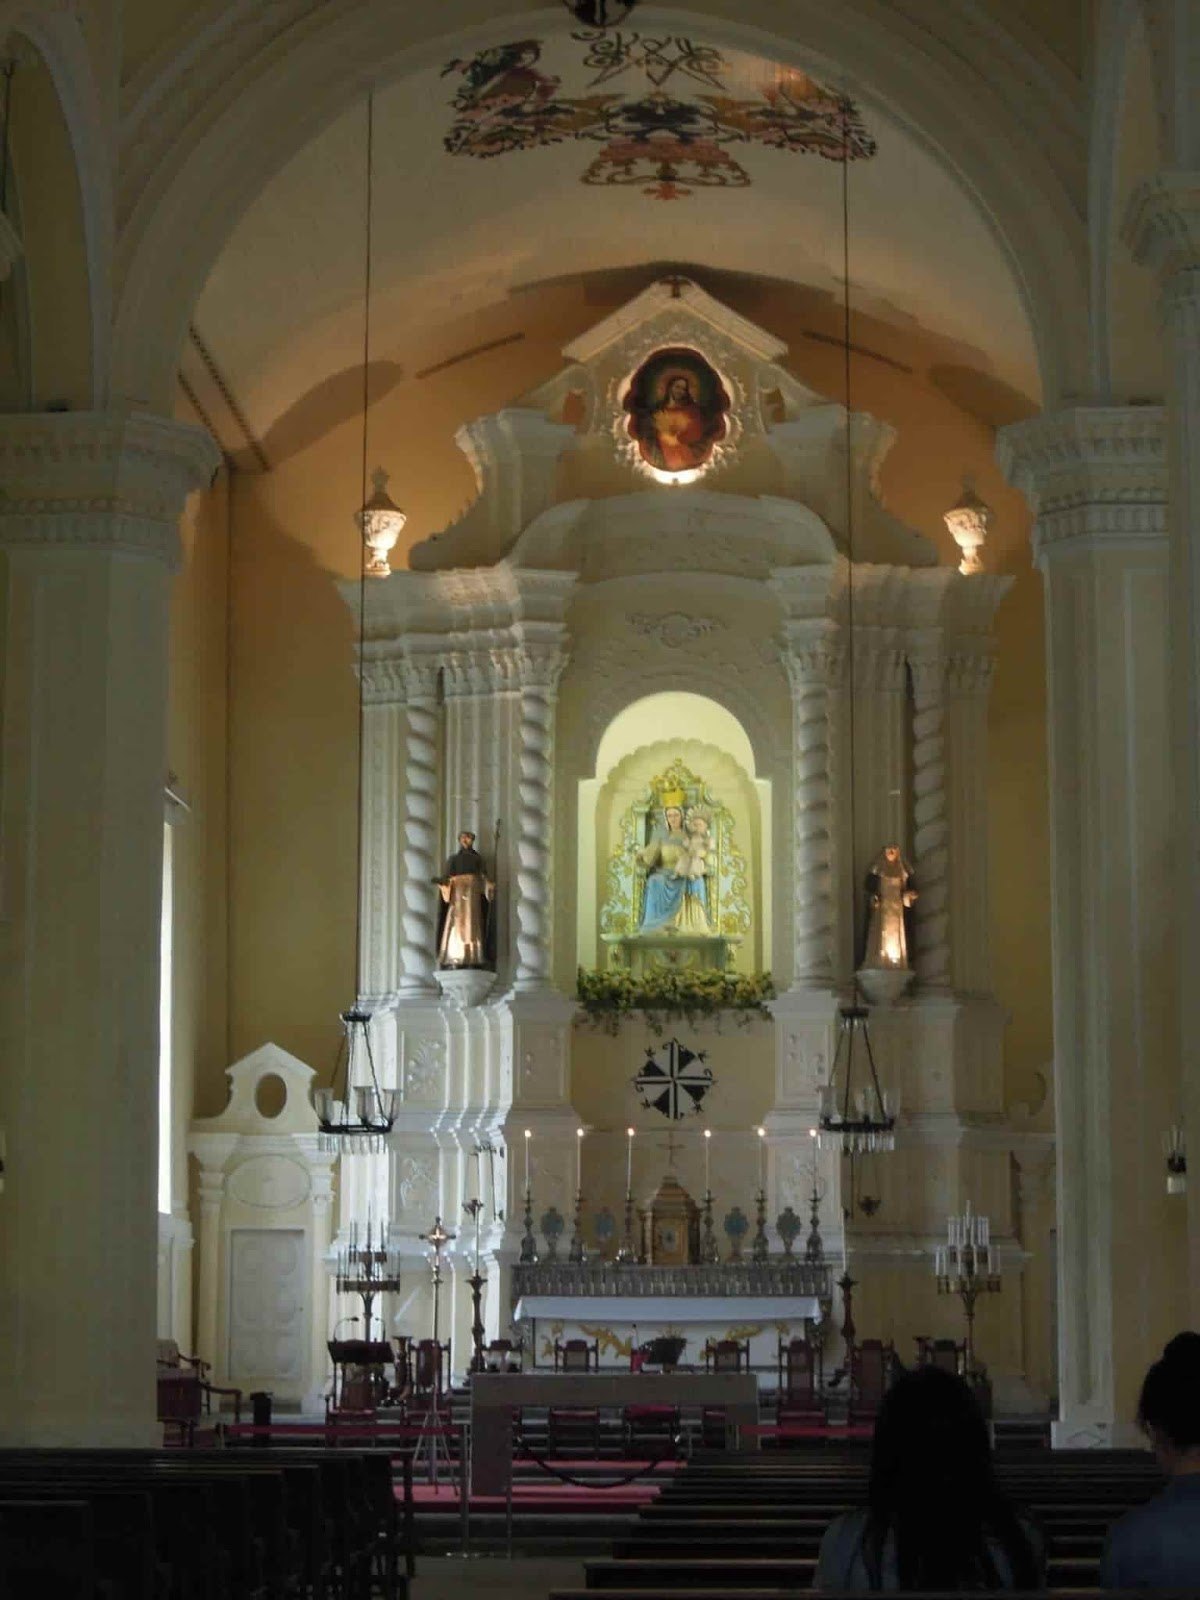 A picture of the interiors of the Sto. Domingo Church in Macau